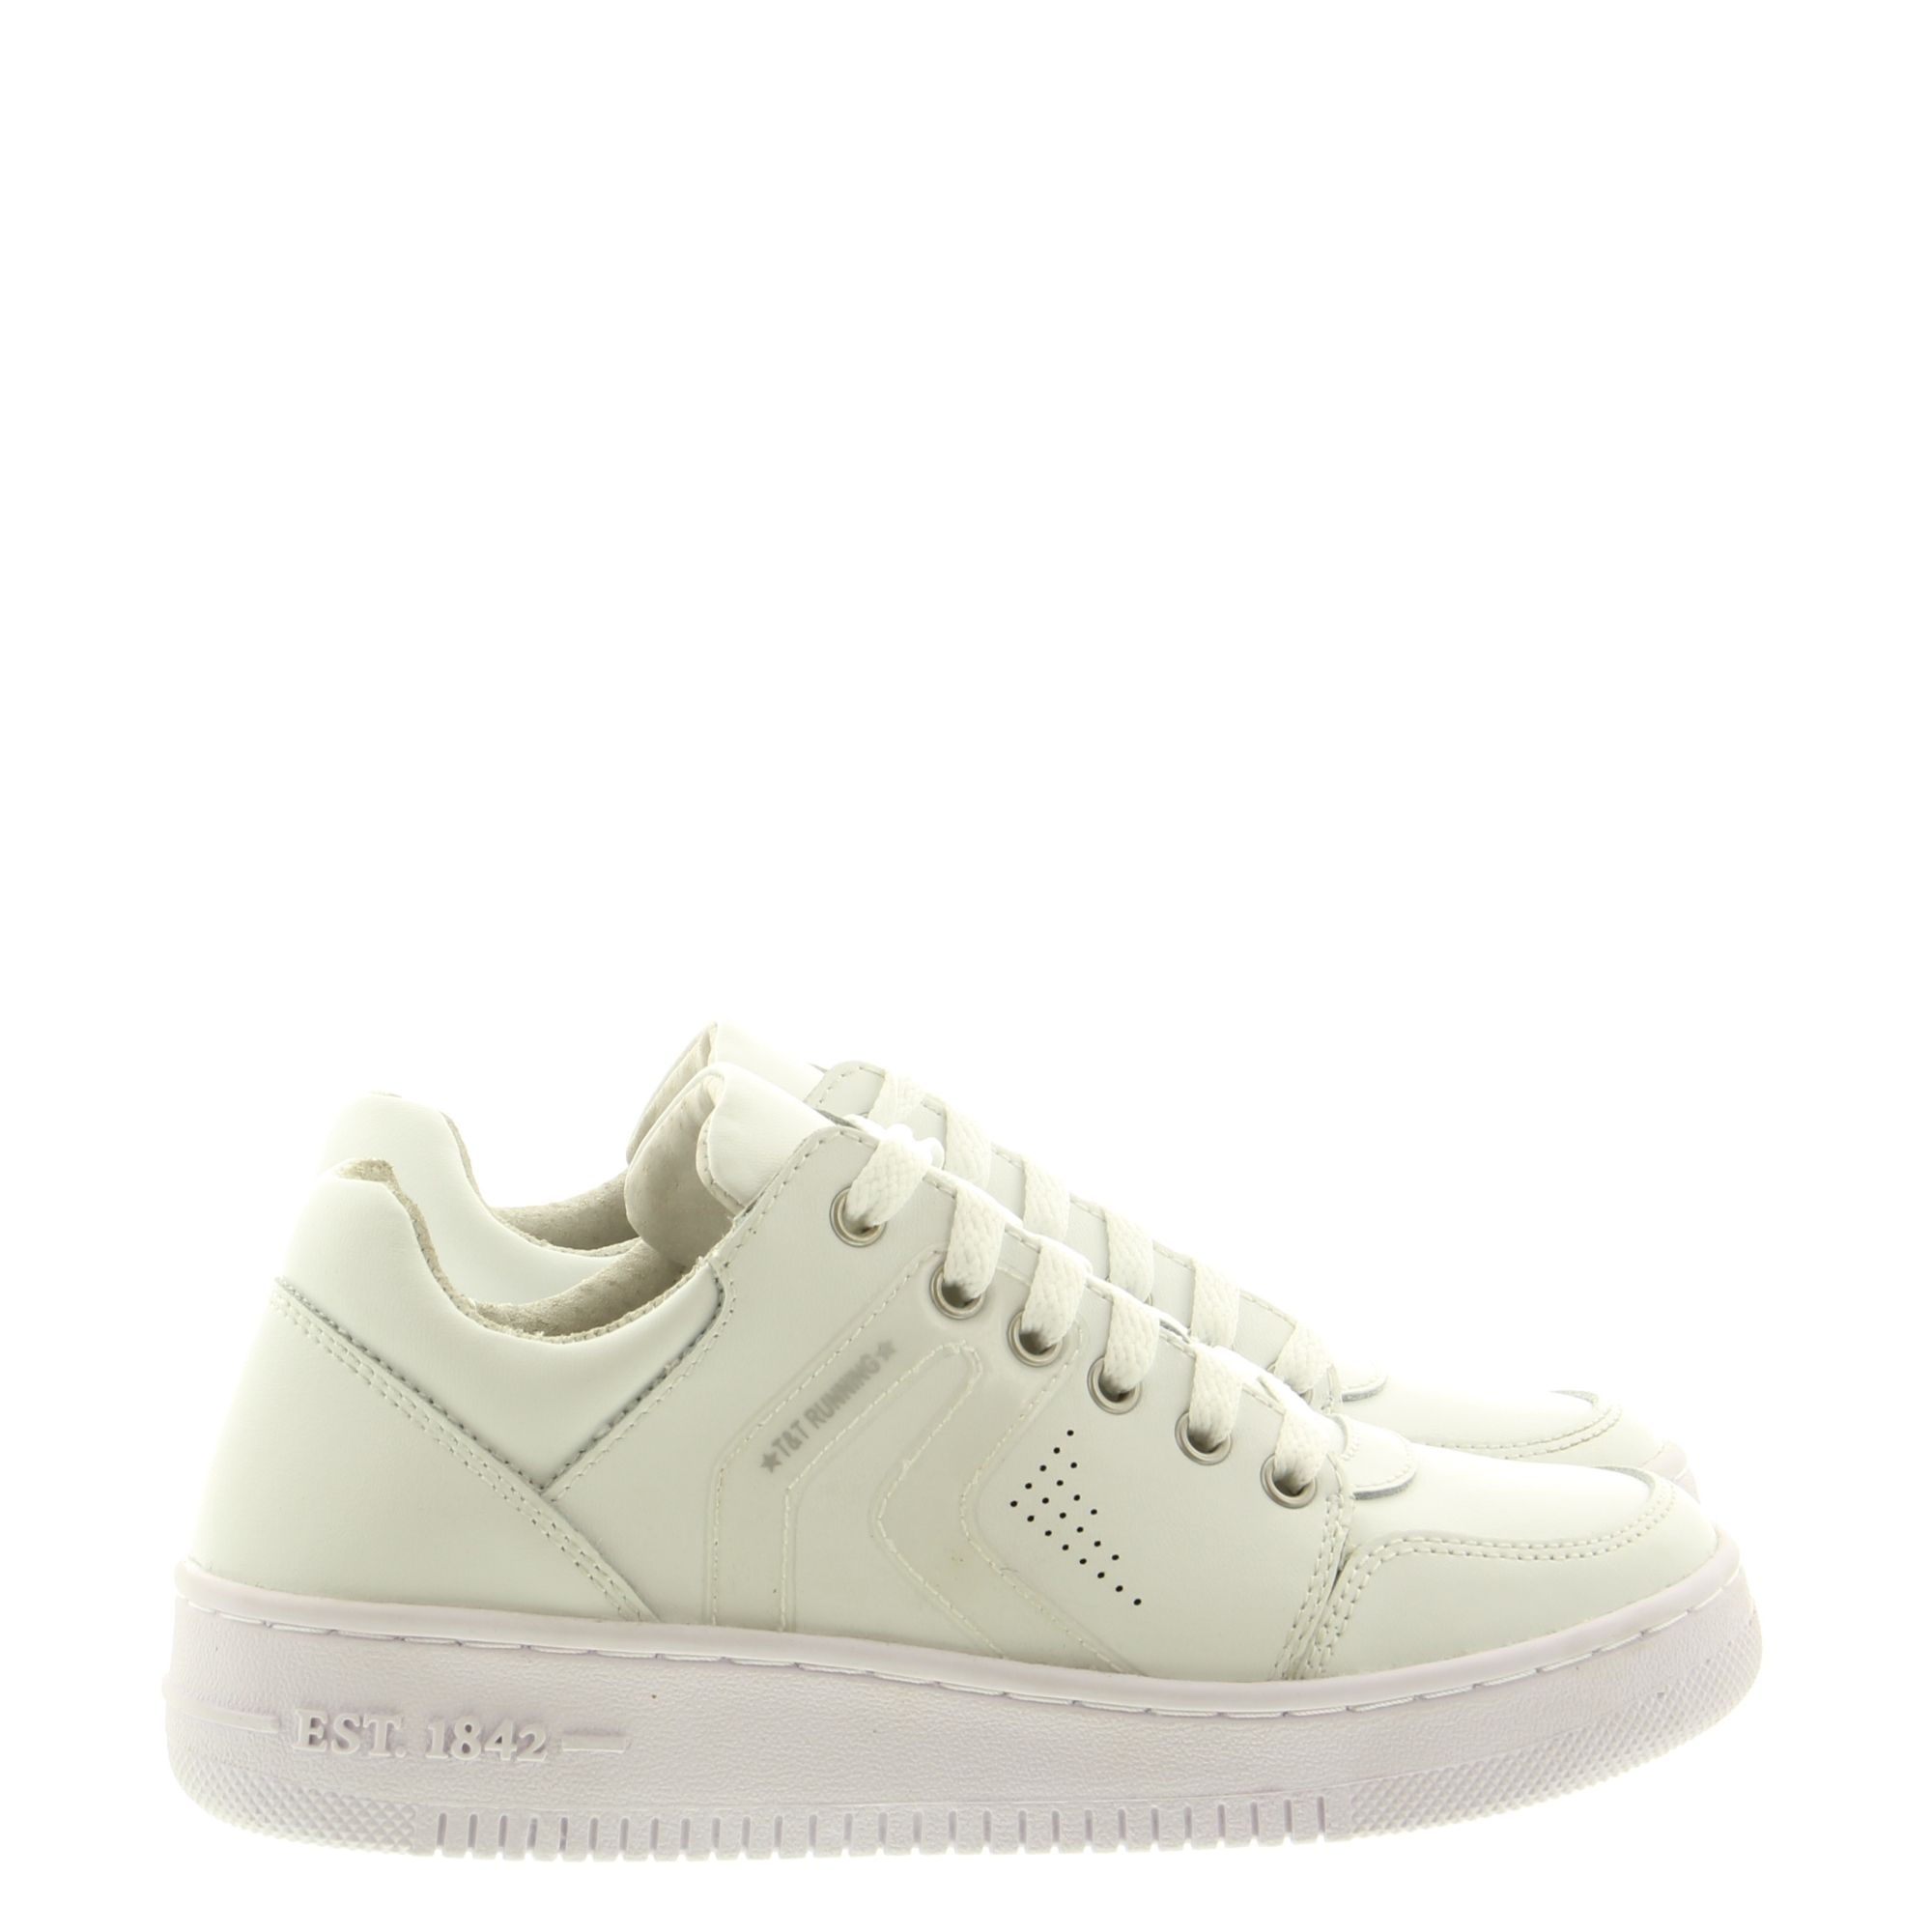 Twins Trackstyle 320365 700 White